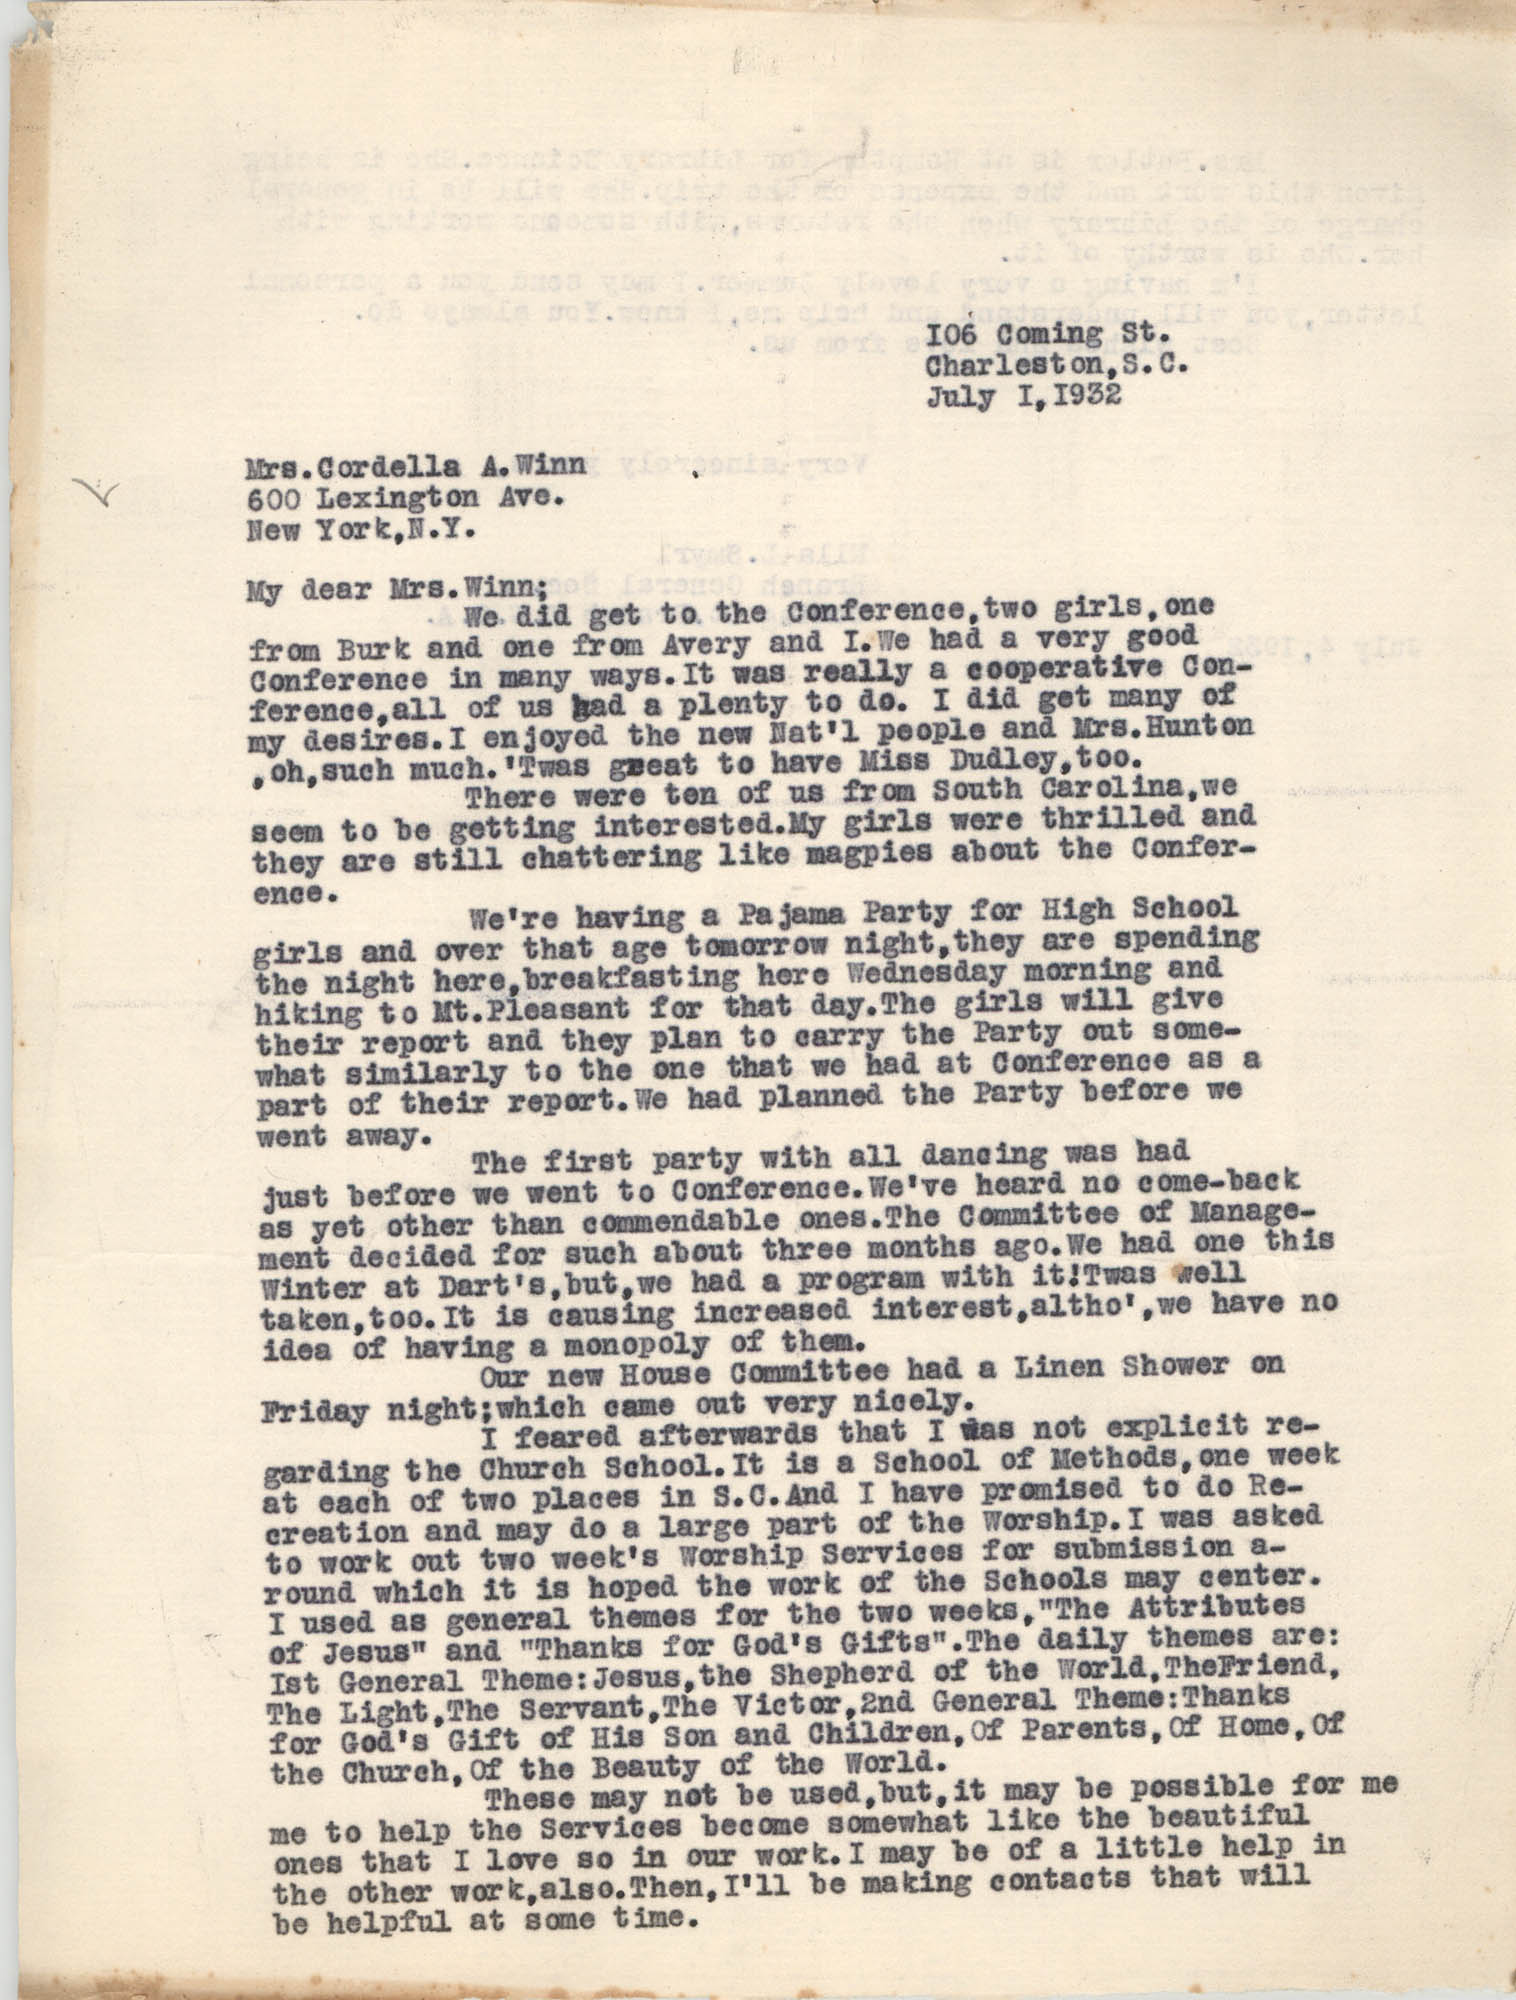 Letter from Ella L. Smyrl to Cordella A. Winn, July 1, 1932